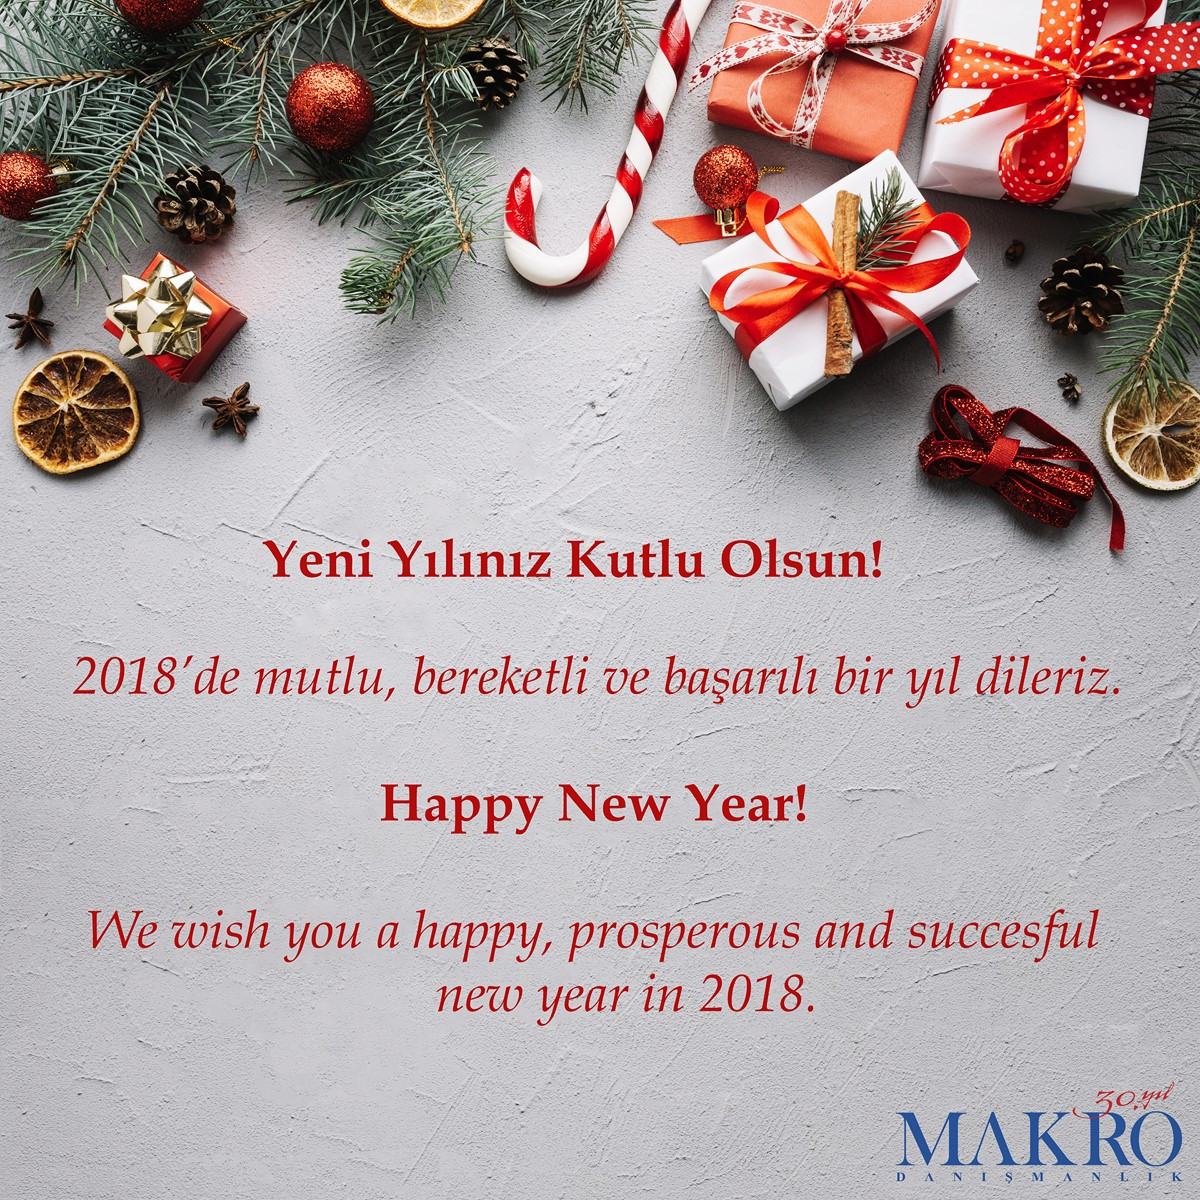 MAKRO New Year Greetings for 2018 – Makro Danışmanlık